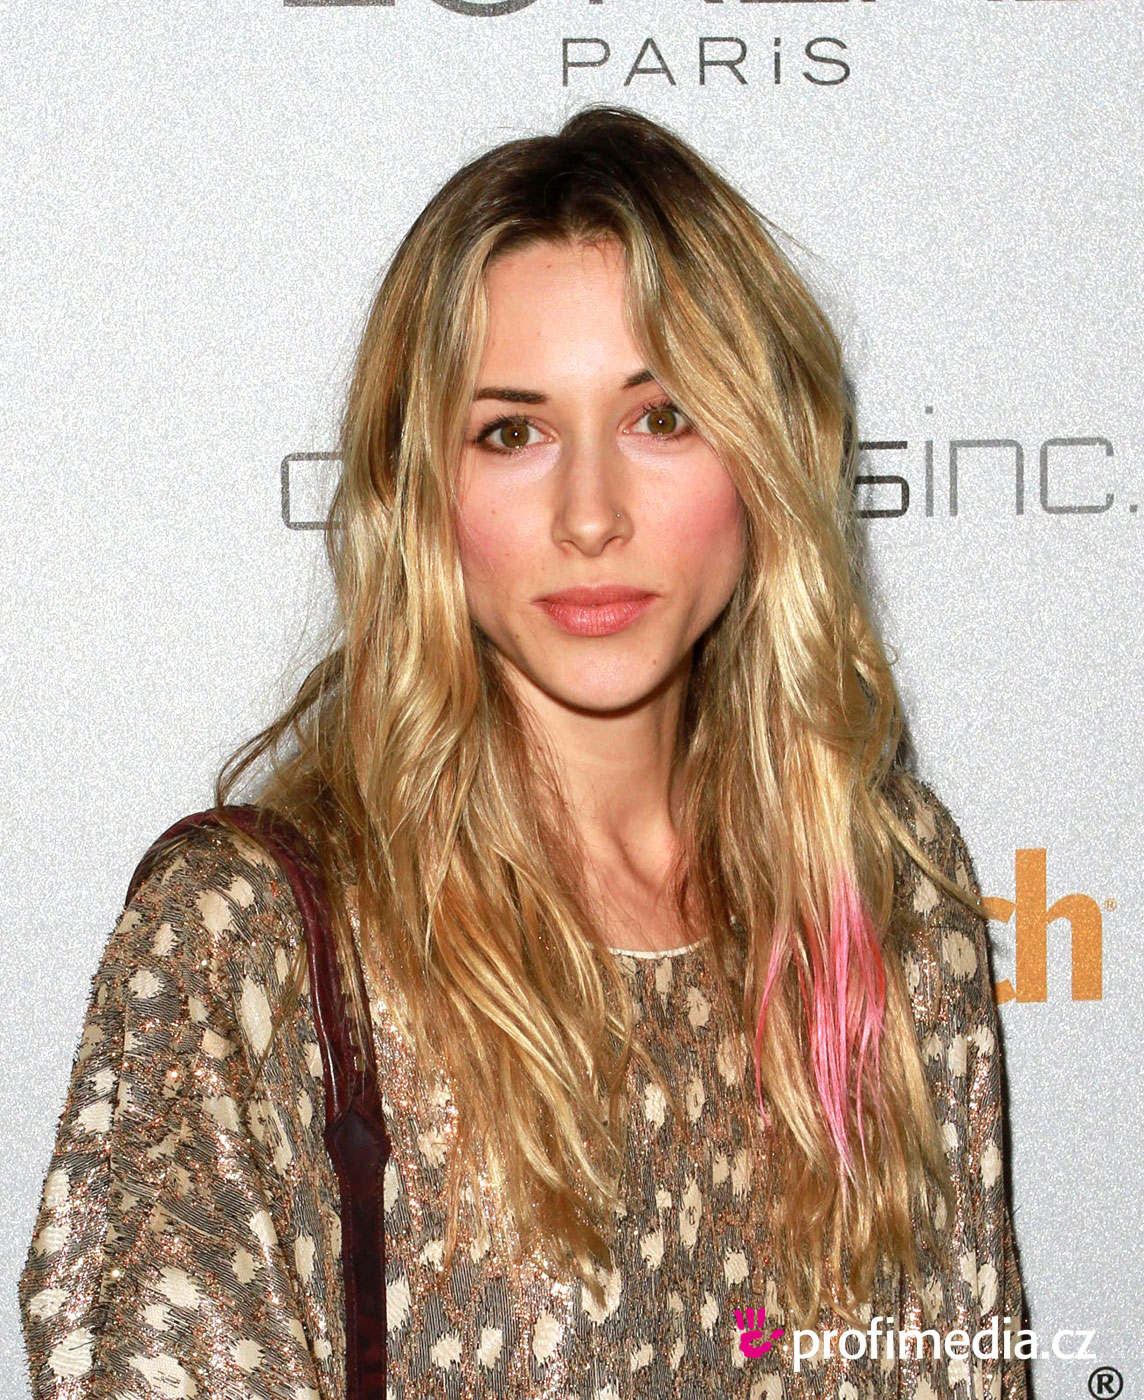 Gillian zinser coiffure happyhair for Miroir virtuel coiffure